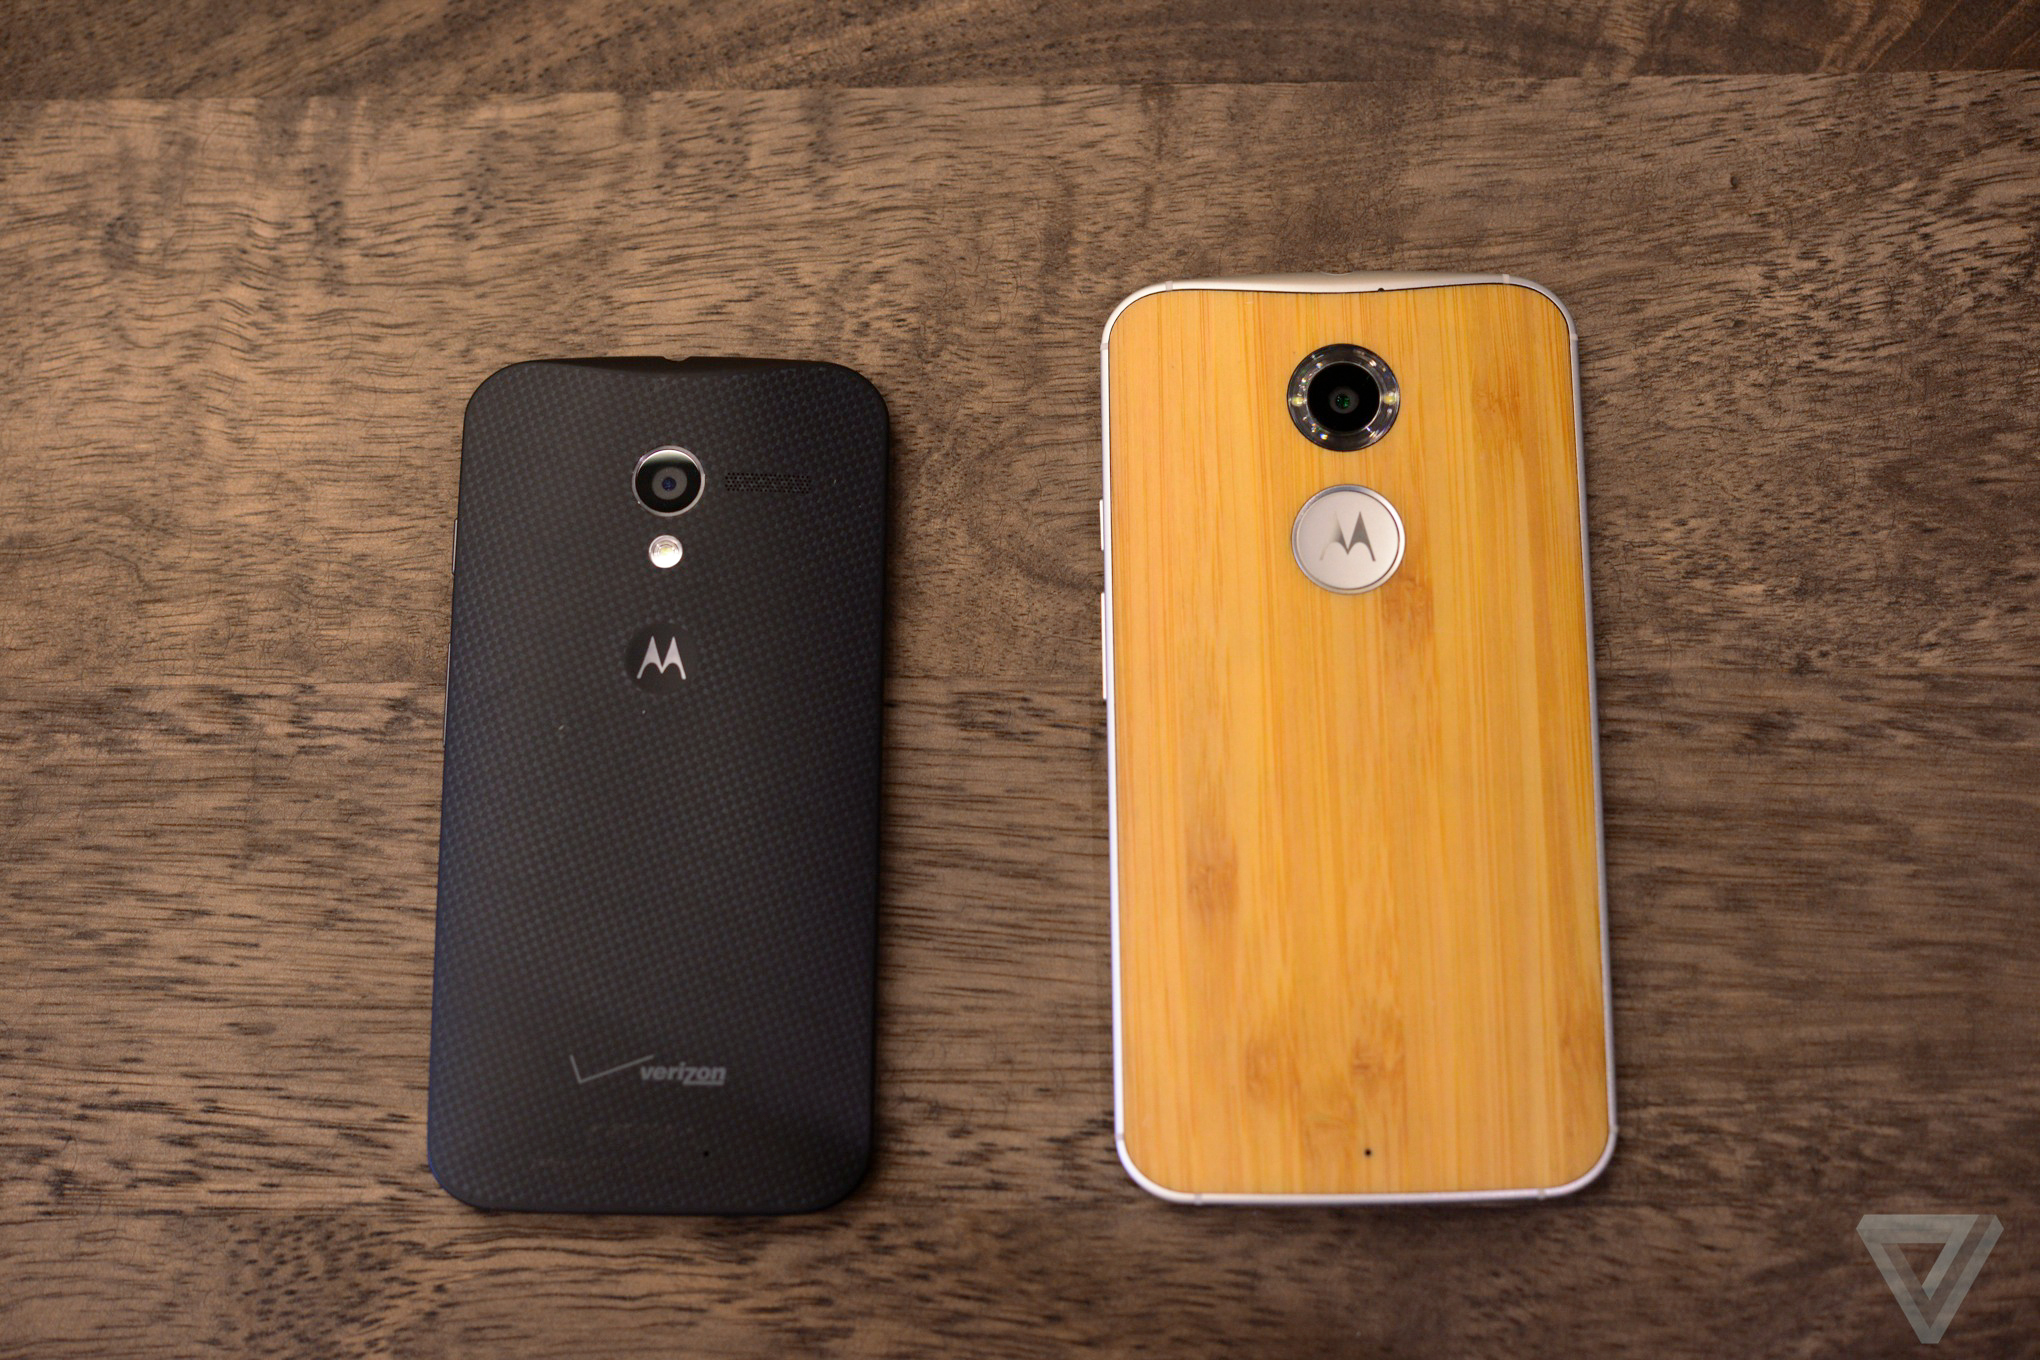 The new Moto X could be the best Android phone ever made ...